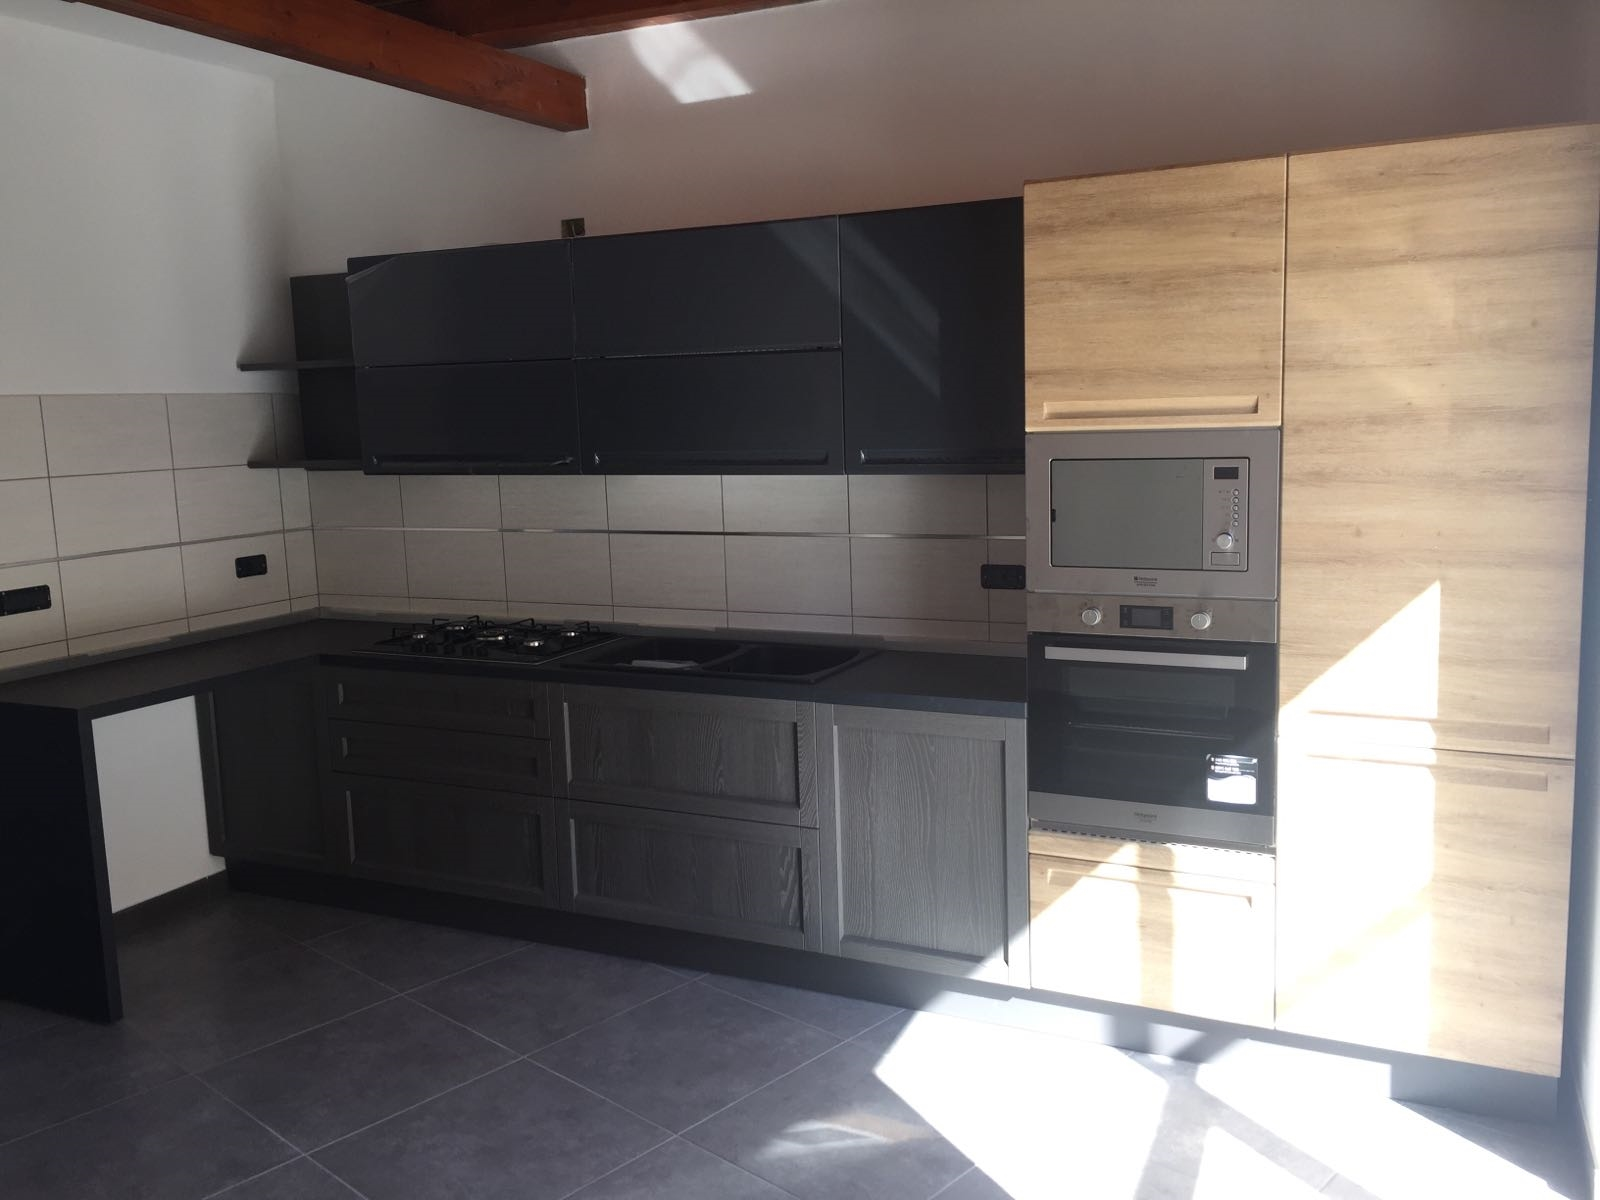 Cucina moderna con piano penisola offerta outlet in for Cucine moderne offerta